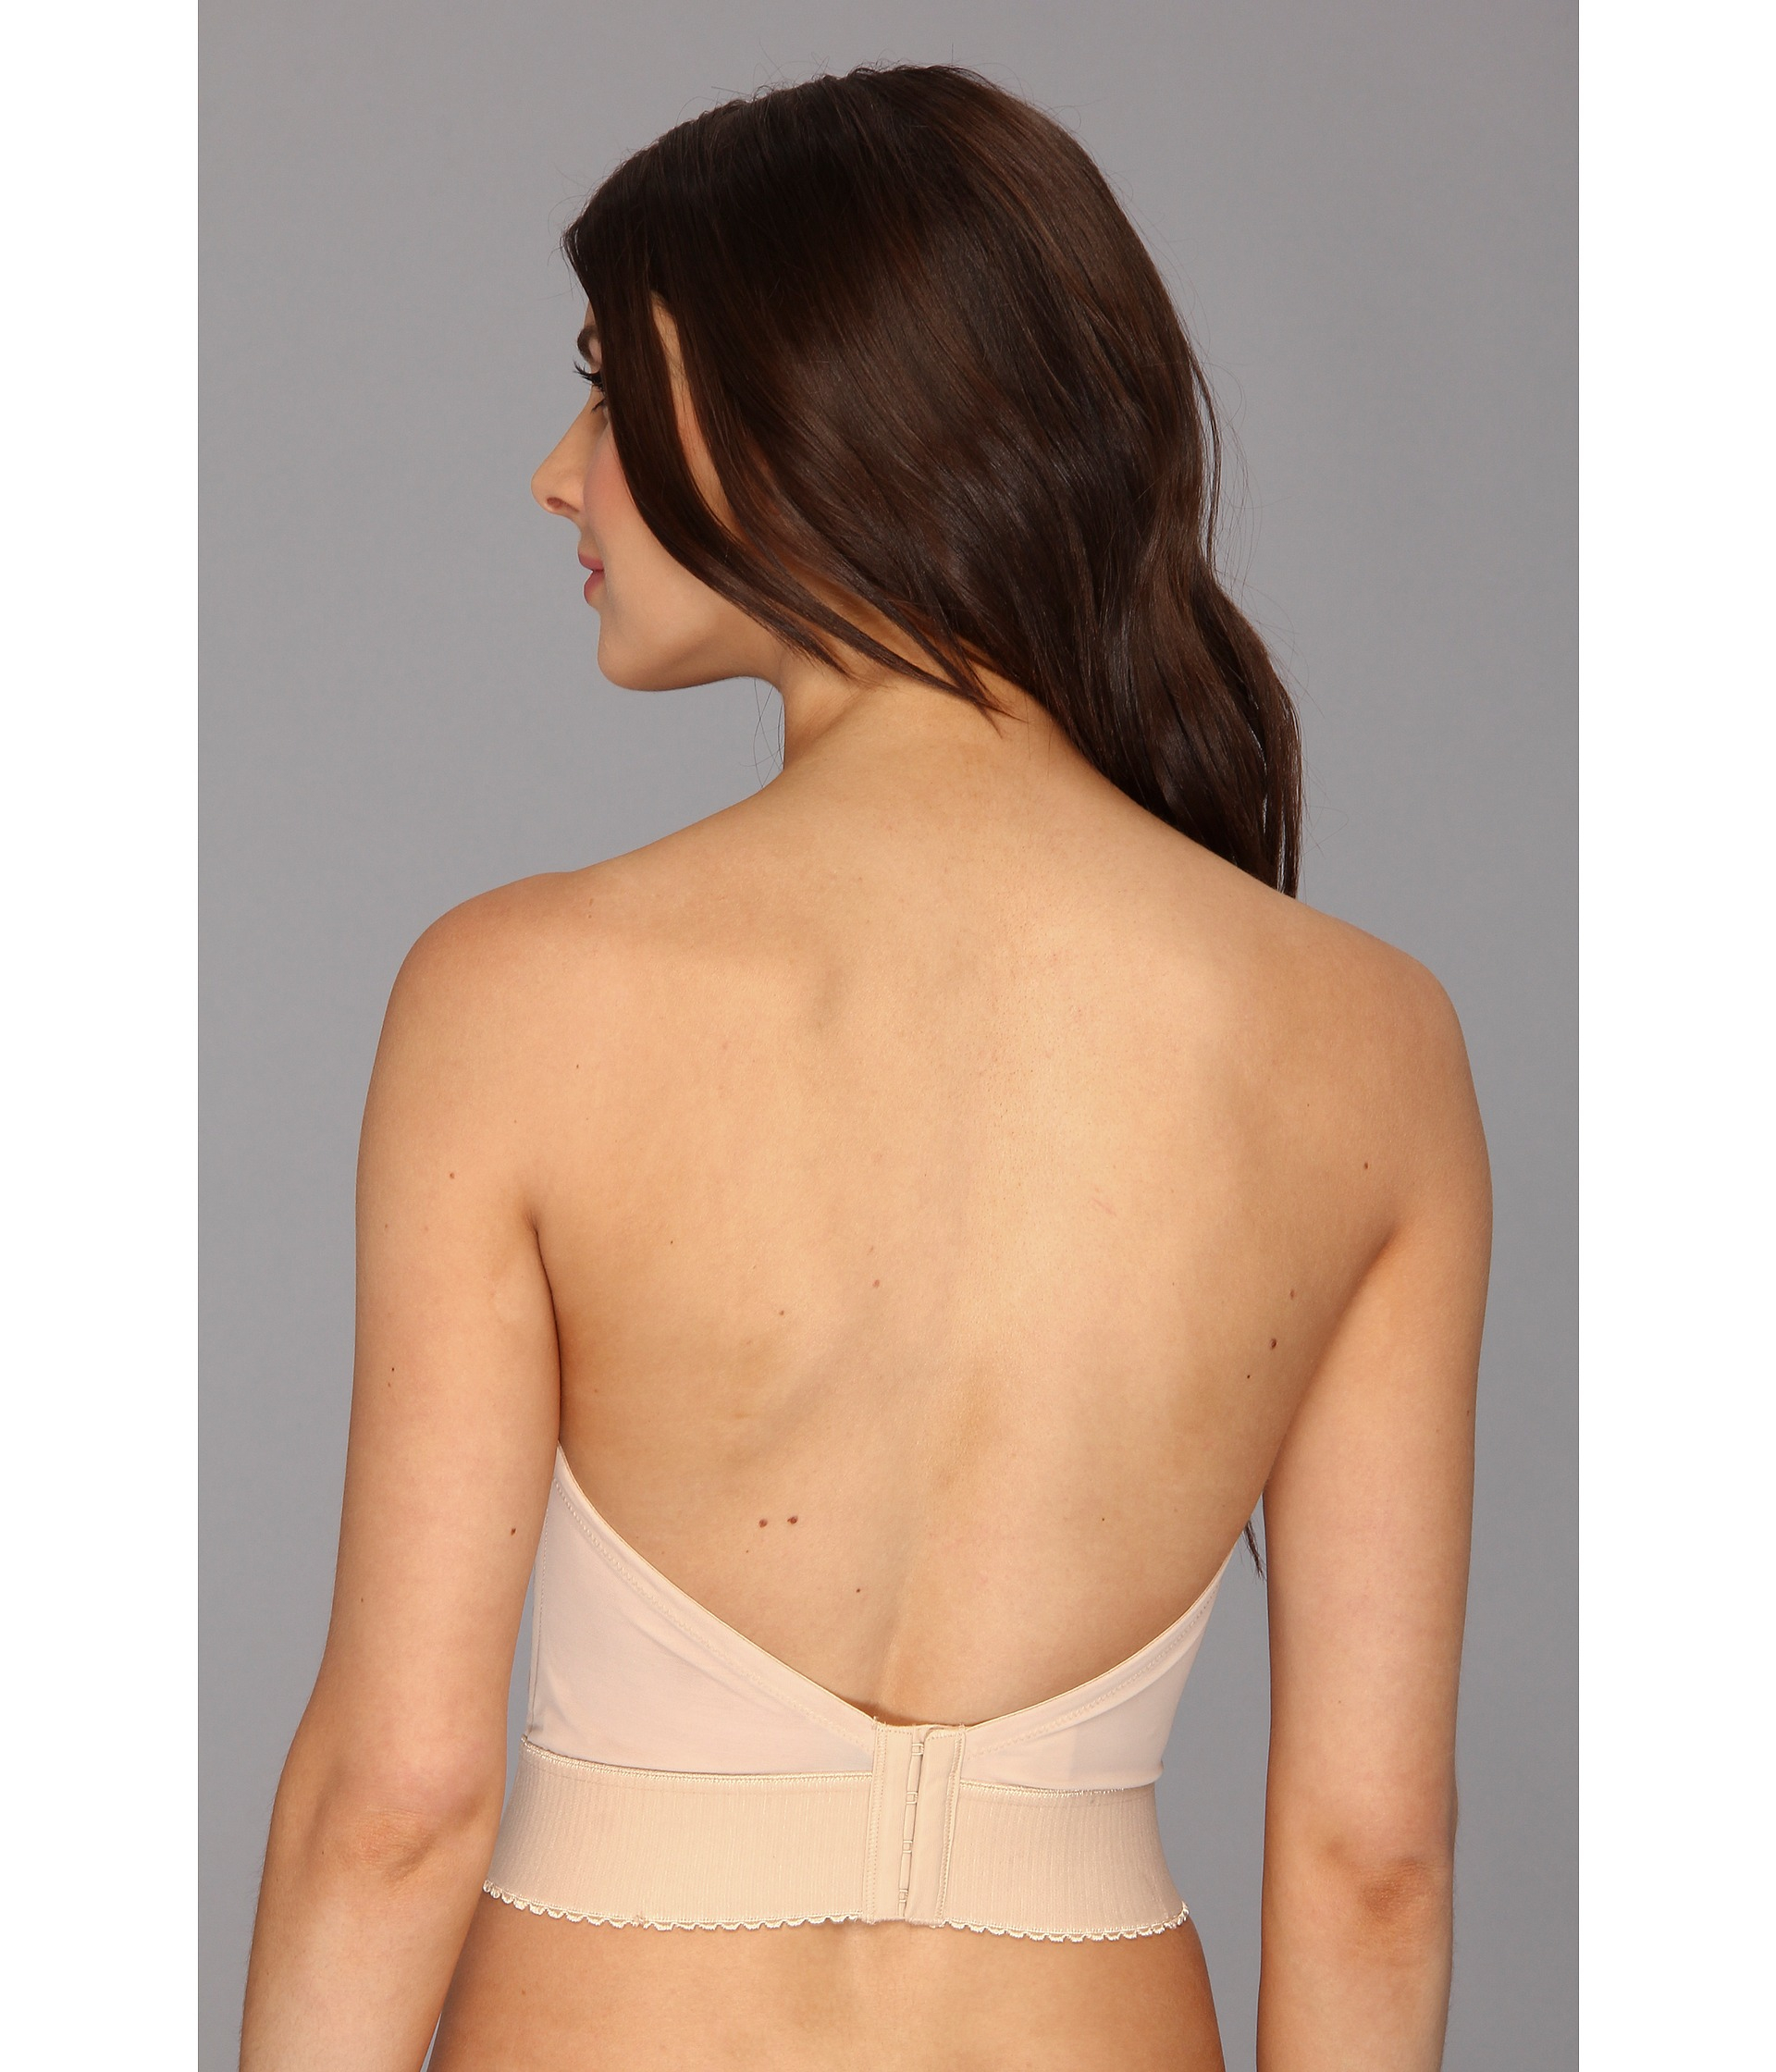 042a1abab1daf Lyst - Wacoal Red Carpet Long Line Bustier Bra 859119 in Natural